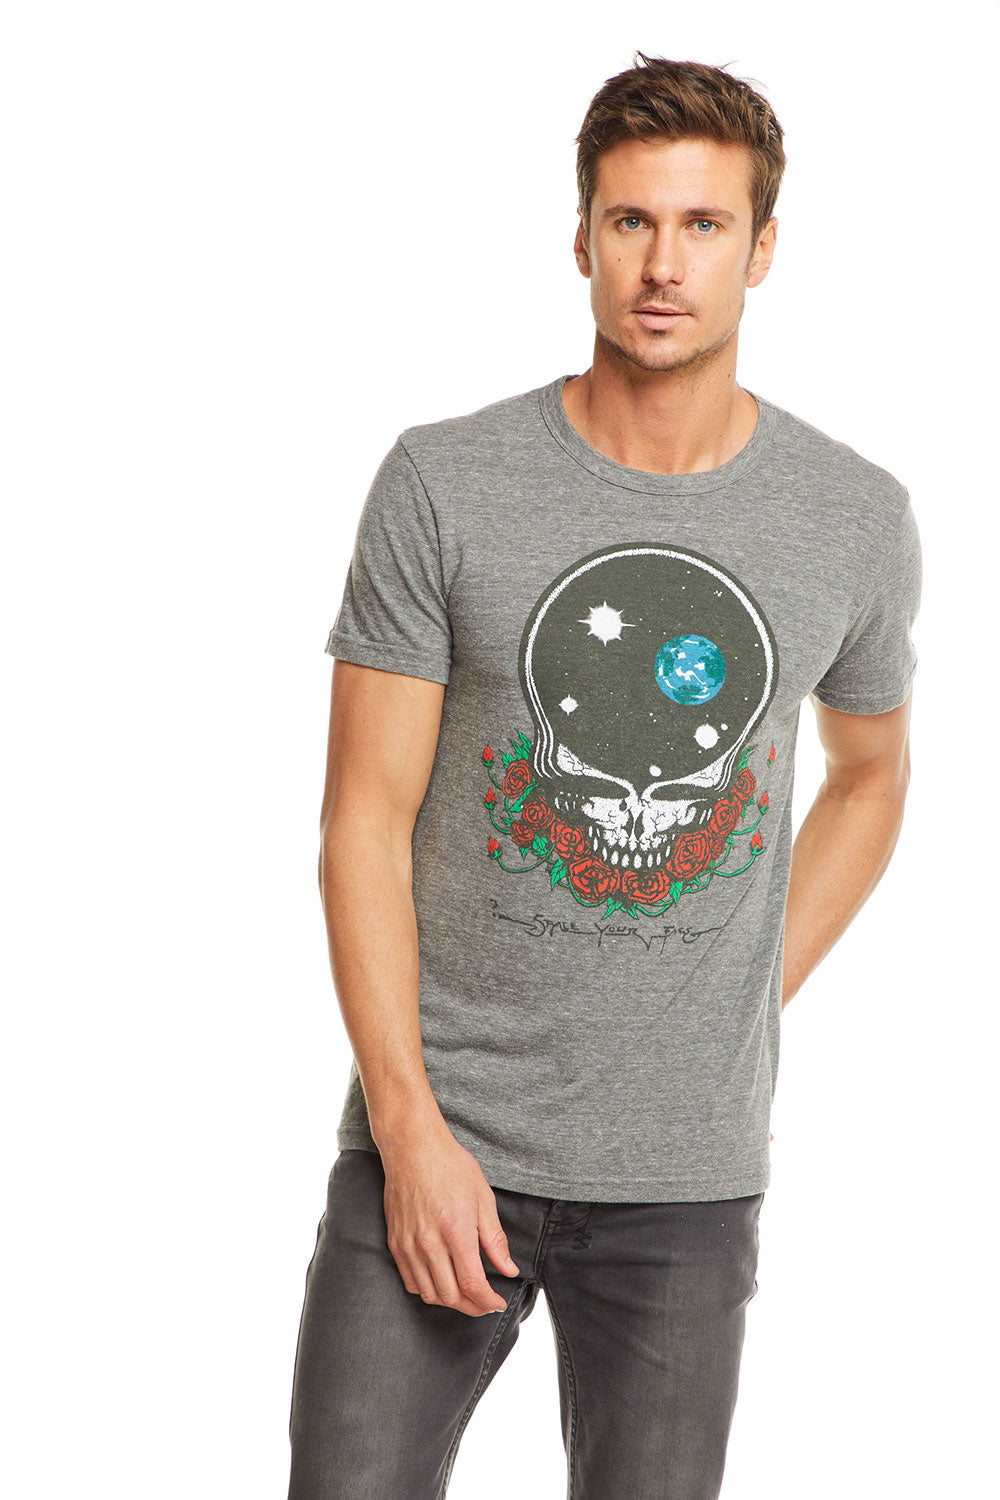 Grateful Dead - Space Your Face MENS chaserbrand4.myshopify.com